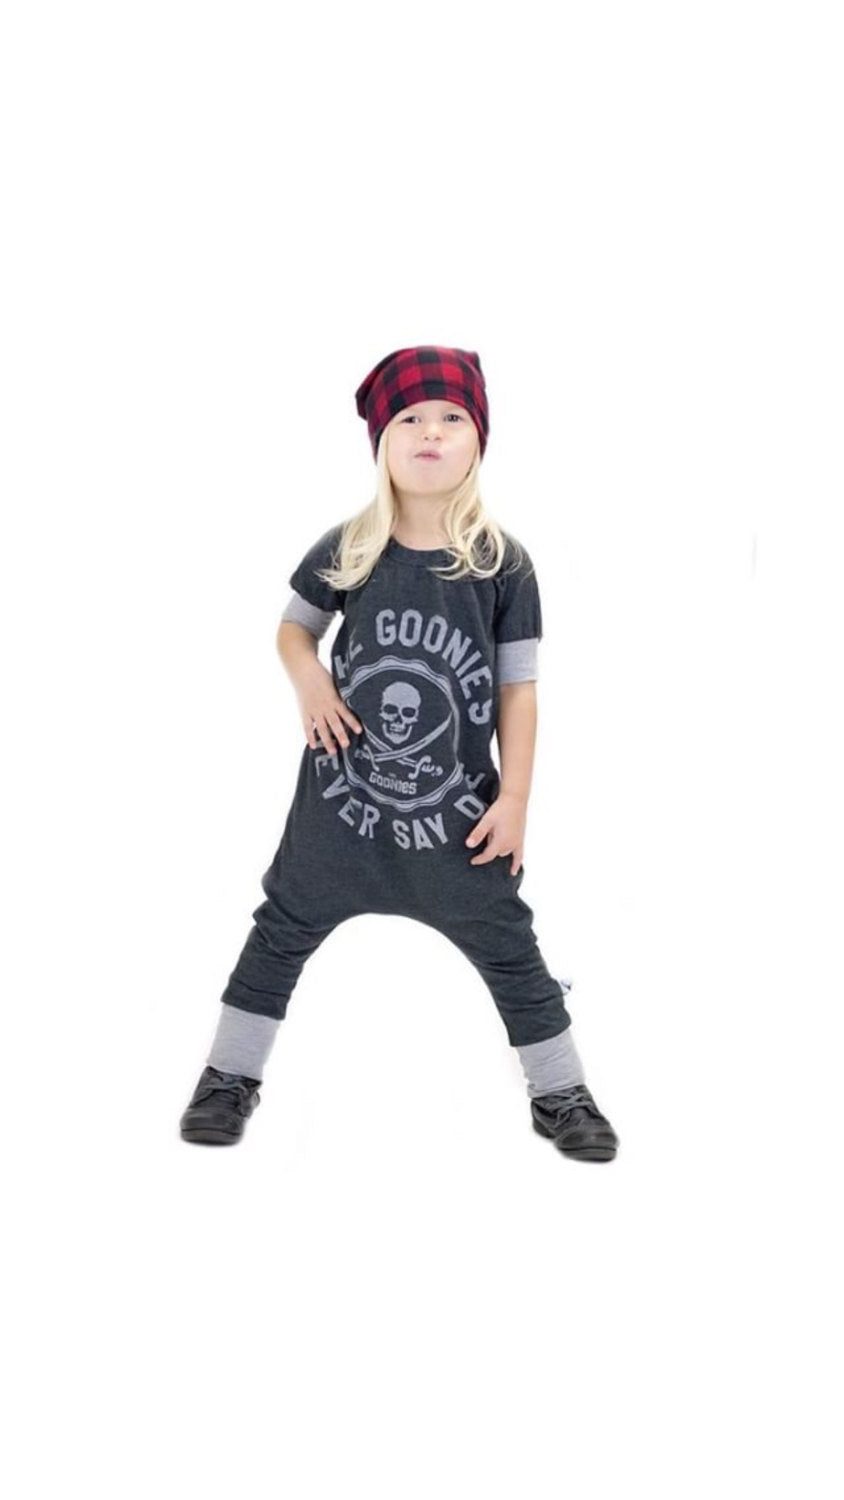 The Goonies Never Say Die Romper/Dress/Hoodie, Short Sleeve Romper Option